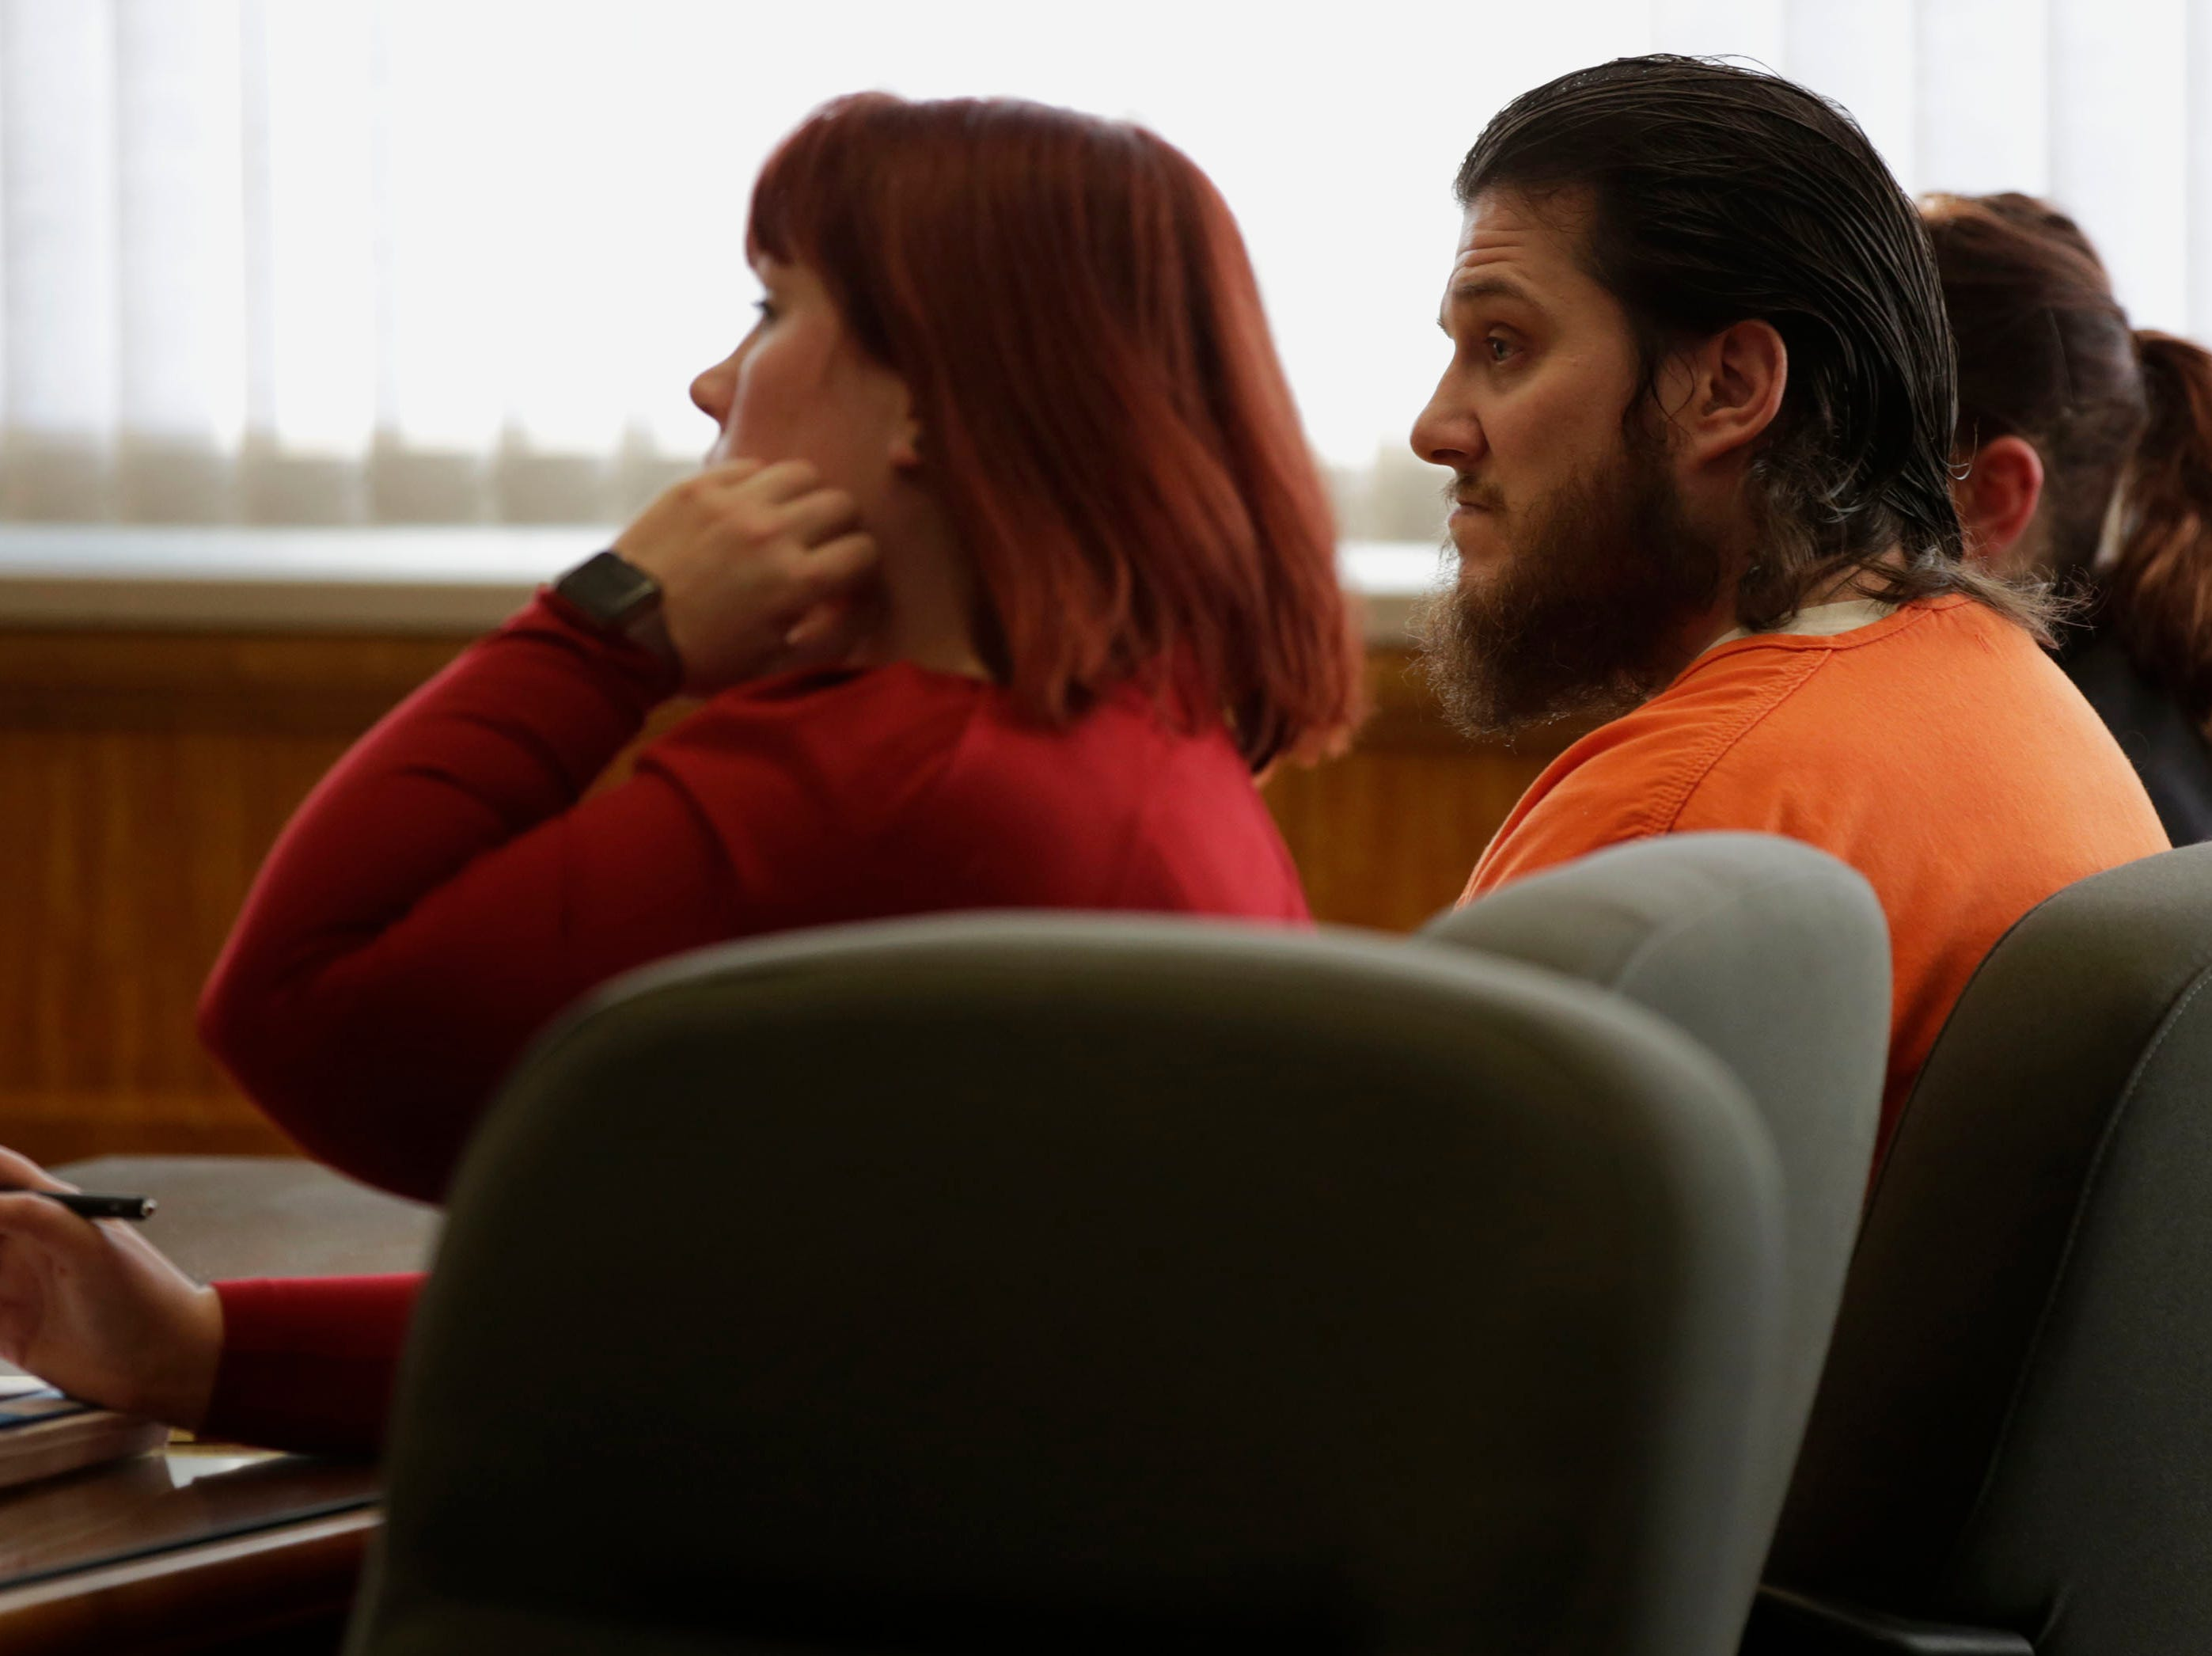 James Georgeson listens to a victim impact statement during a sentencing hearing on Friday, December 14, 2018, at the Wood County courthouse in Wisconsin Rapids, Wis. Georgeson was convicted of second-degree reckless homicide for the death of his infant son, and was sentenced to 15 years confinement with an additional 10 years of extended supervision.Tork Mason/USA TODAY NETWORK-Wisconsin